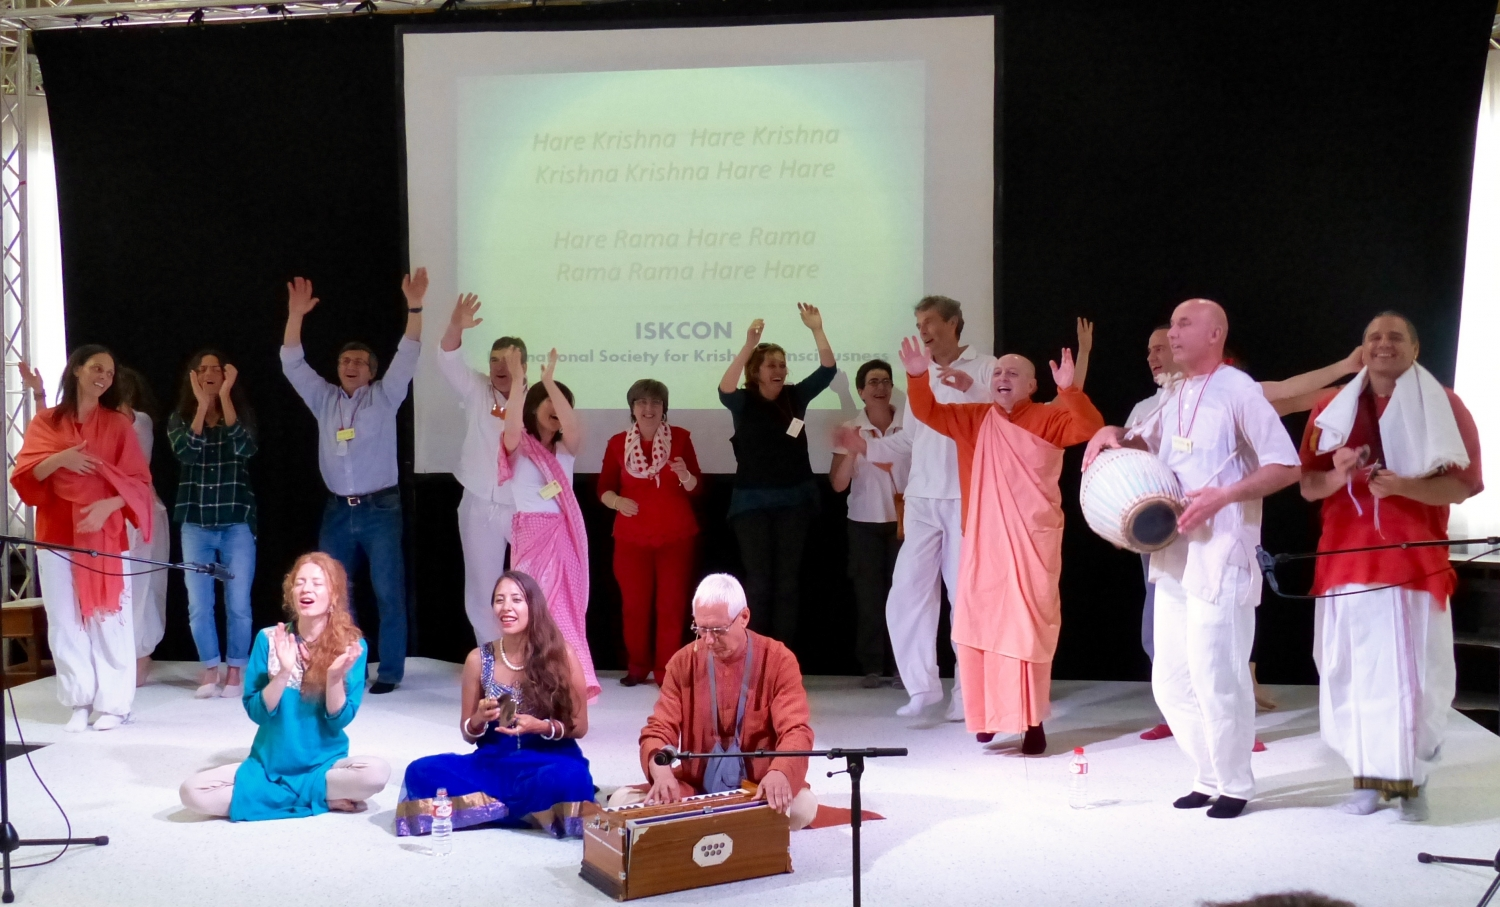 Mantra Presentation by ISKCON - Hare Krshna Spain